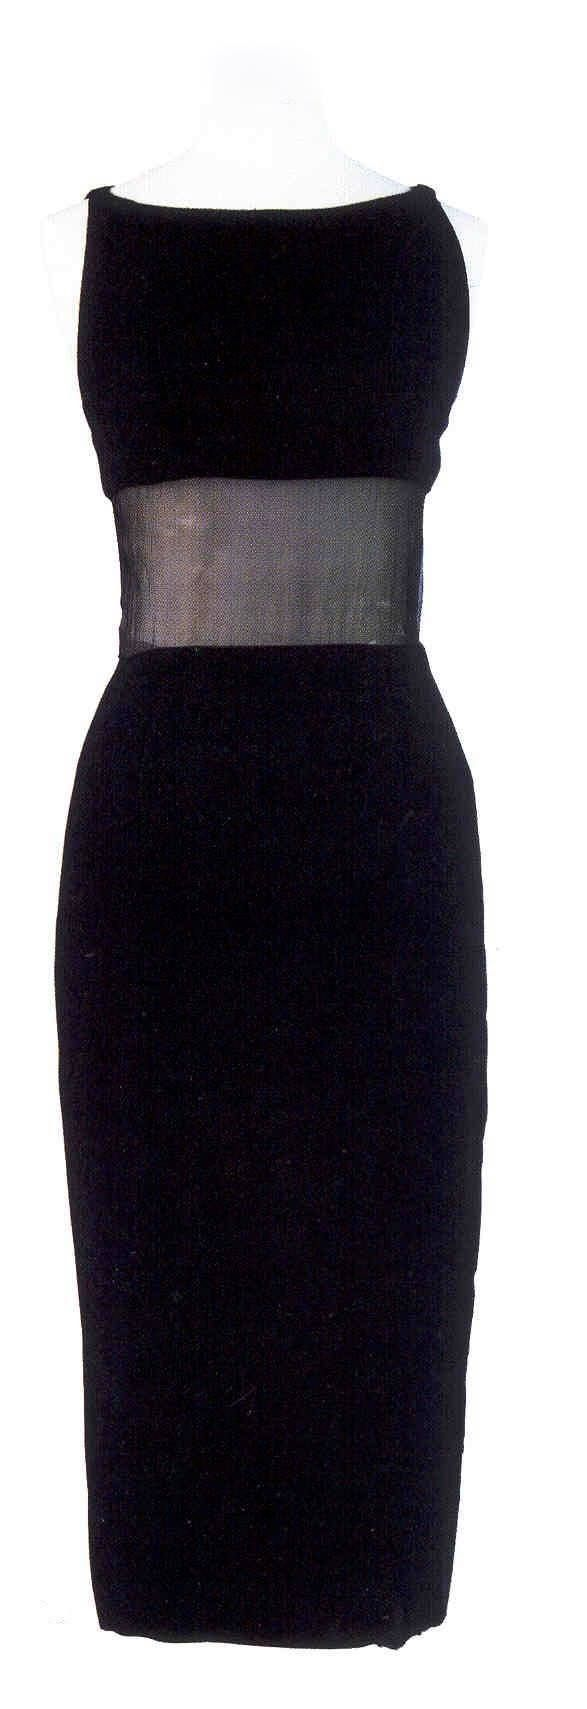 Marilyn Monroe's black dress she wore with Arthur miller while in London. One of my absolute favorites.